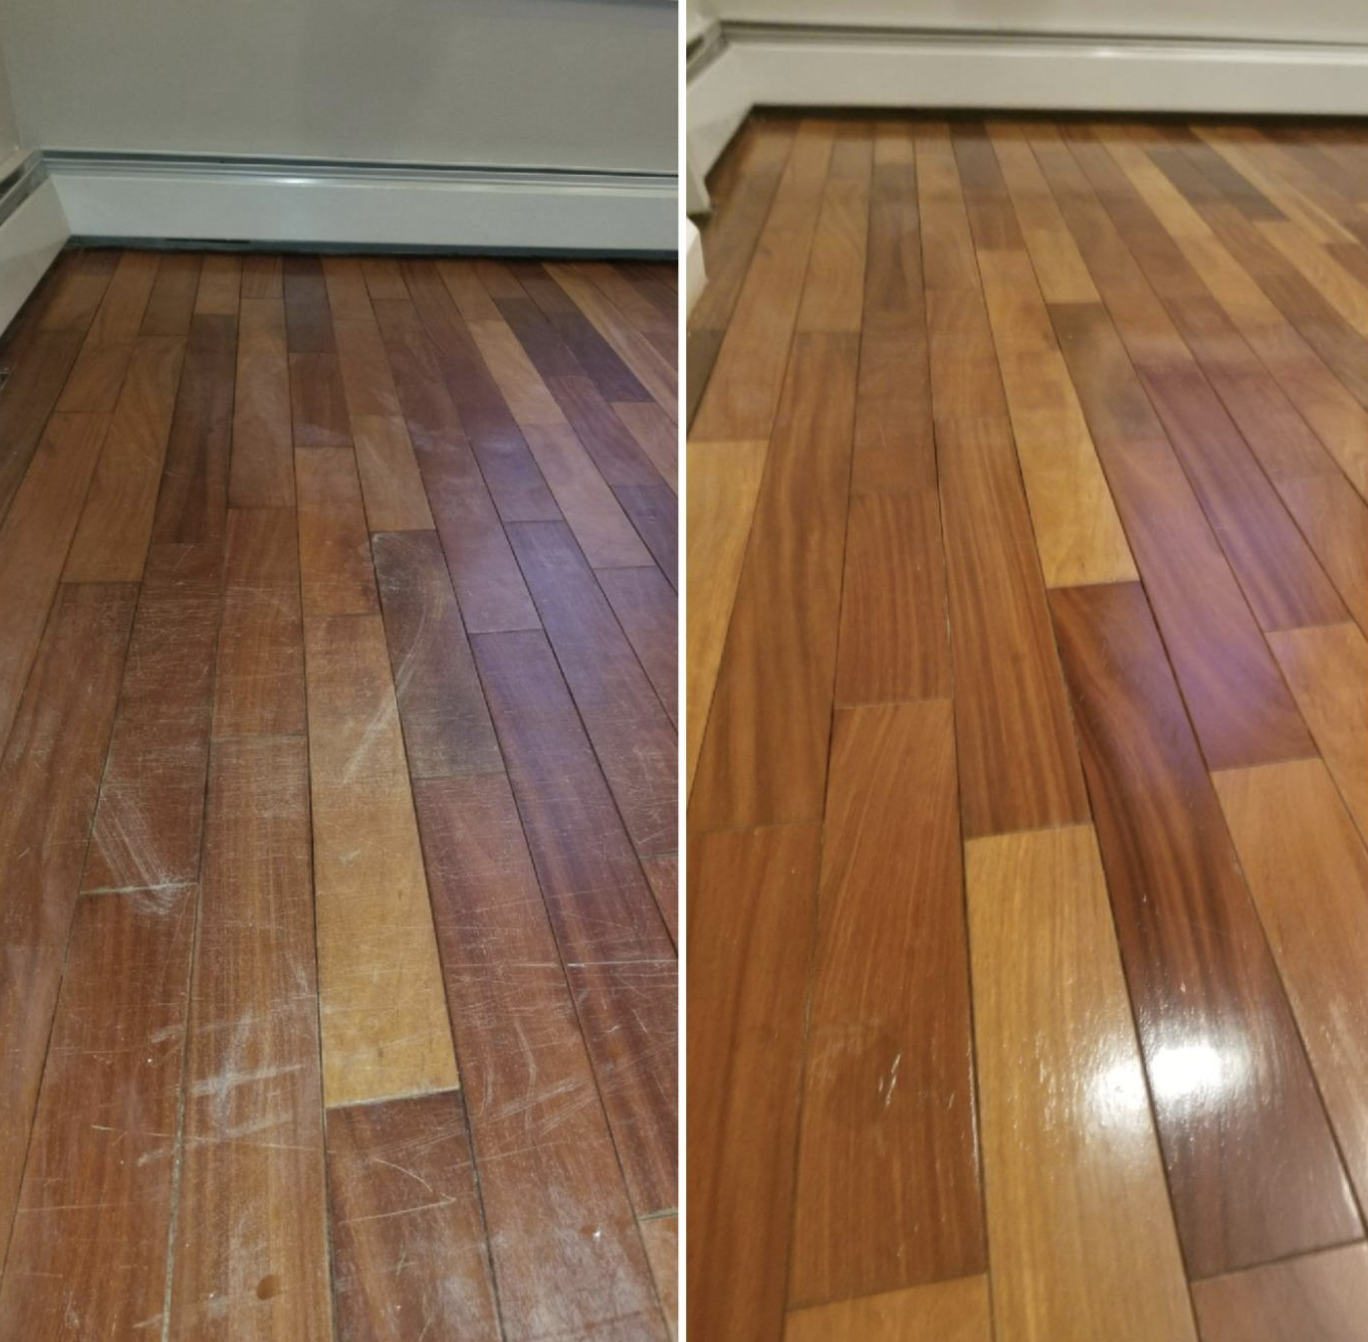 Reviewer's before/after pic of wood floors with the after pic showing shiny, scratch-free floors